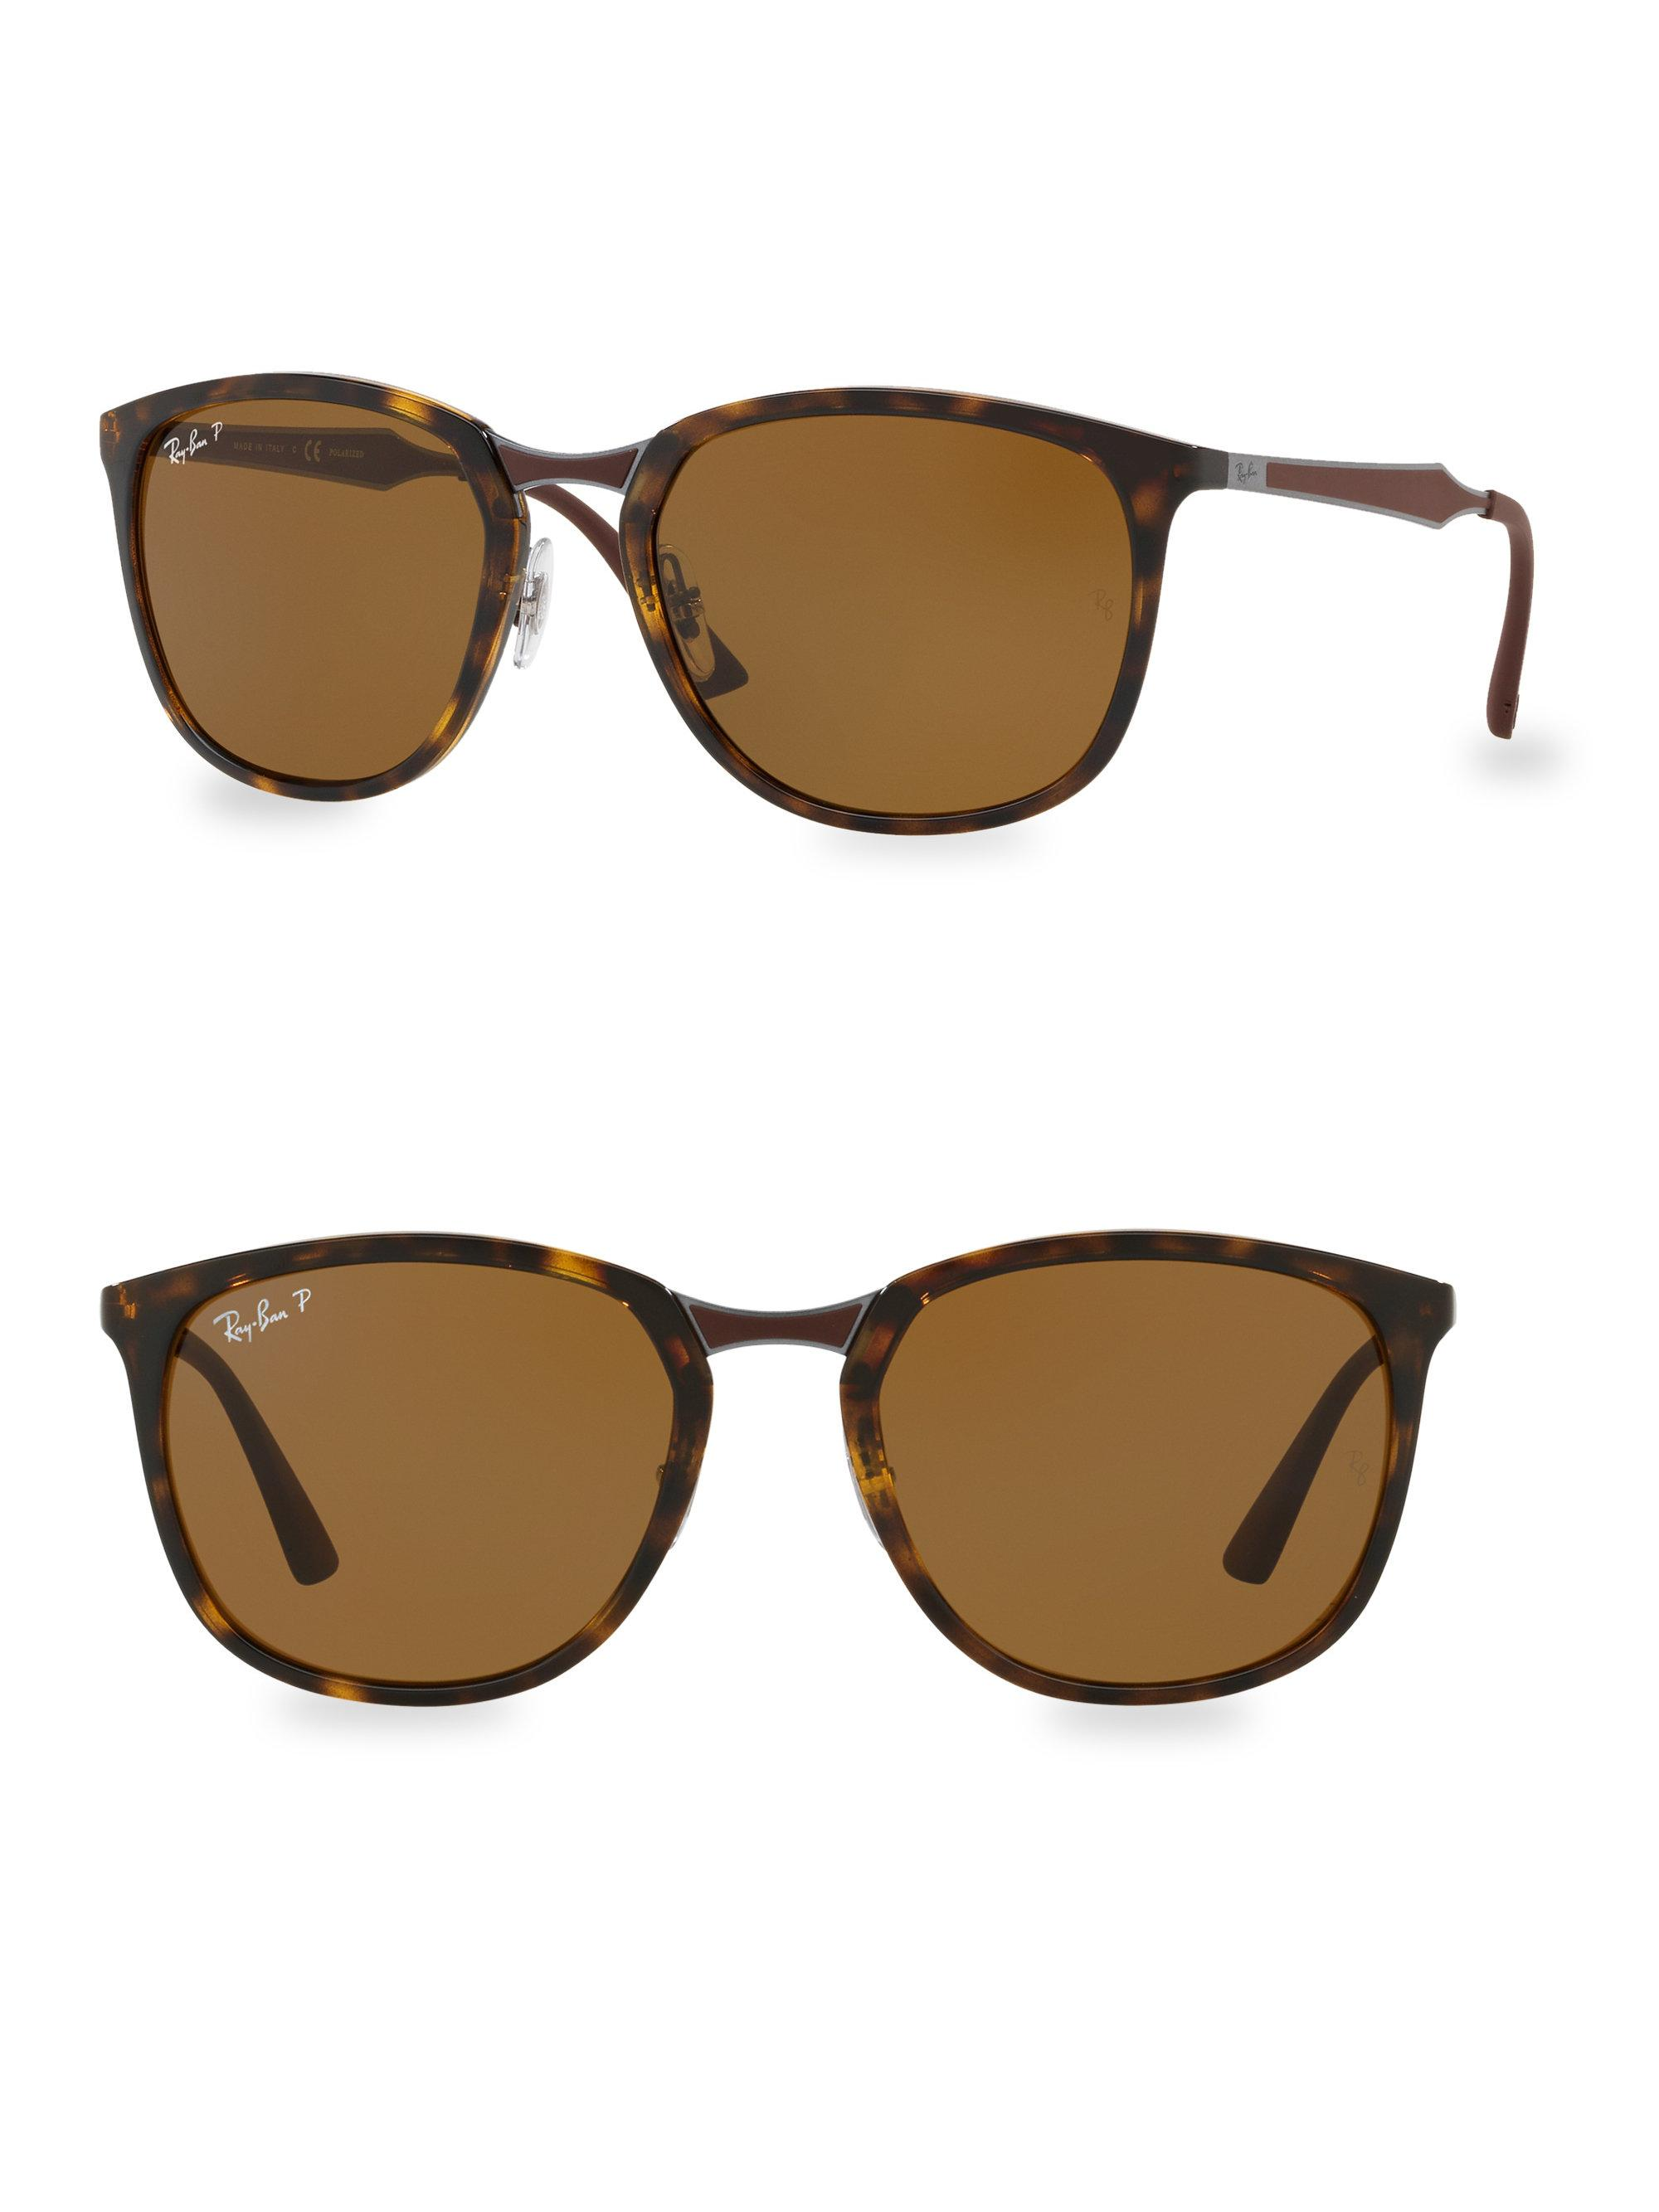 9949da31f2b Lyst - Ray-Ban Round Tortoise Sunglasses in Brown for Men